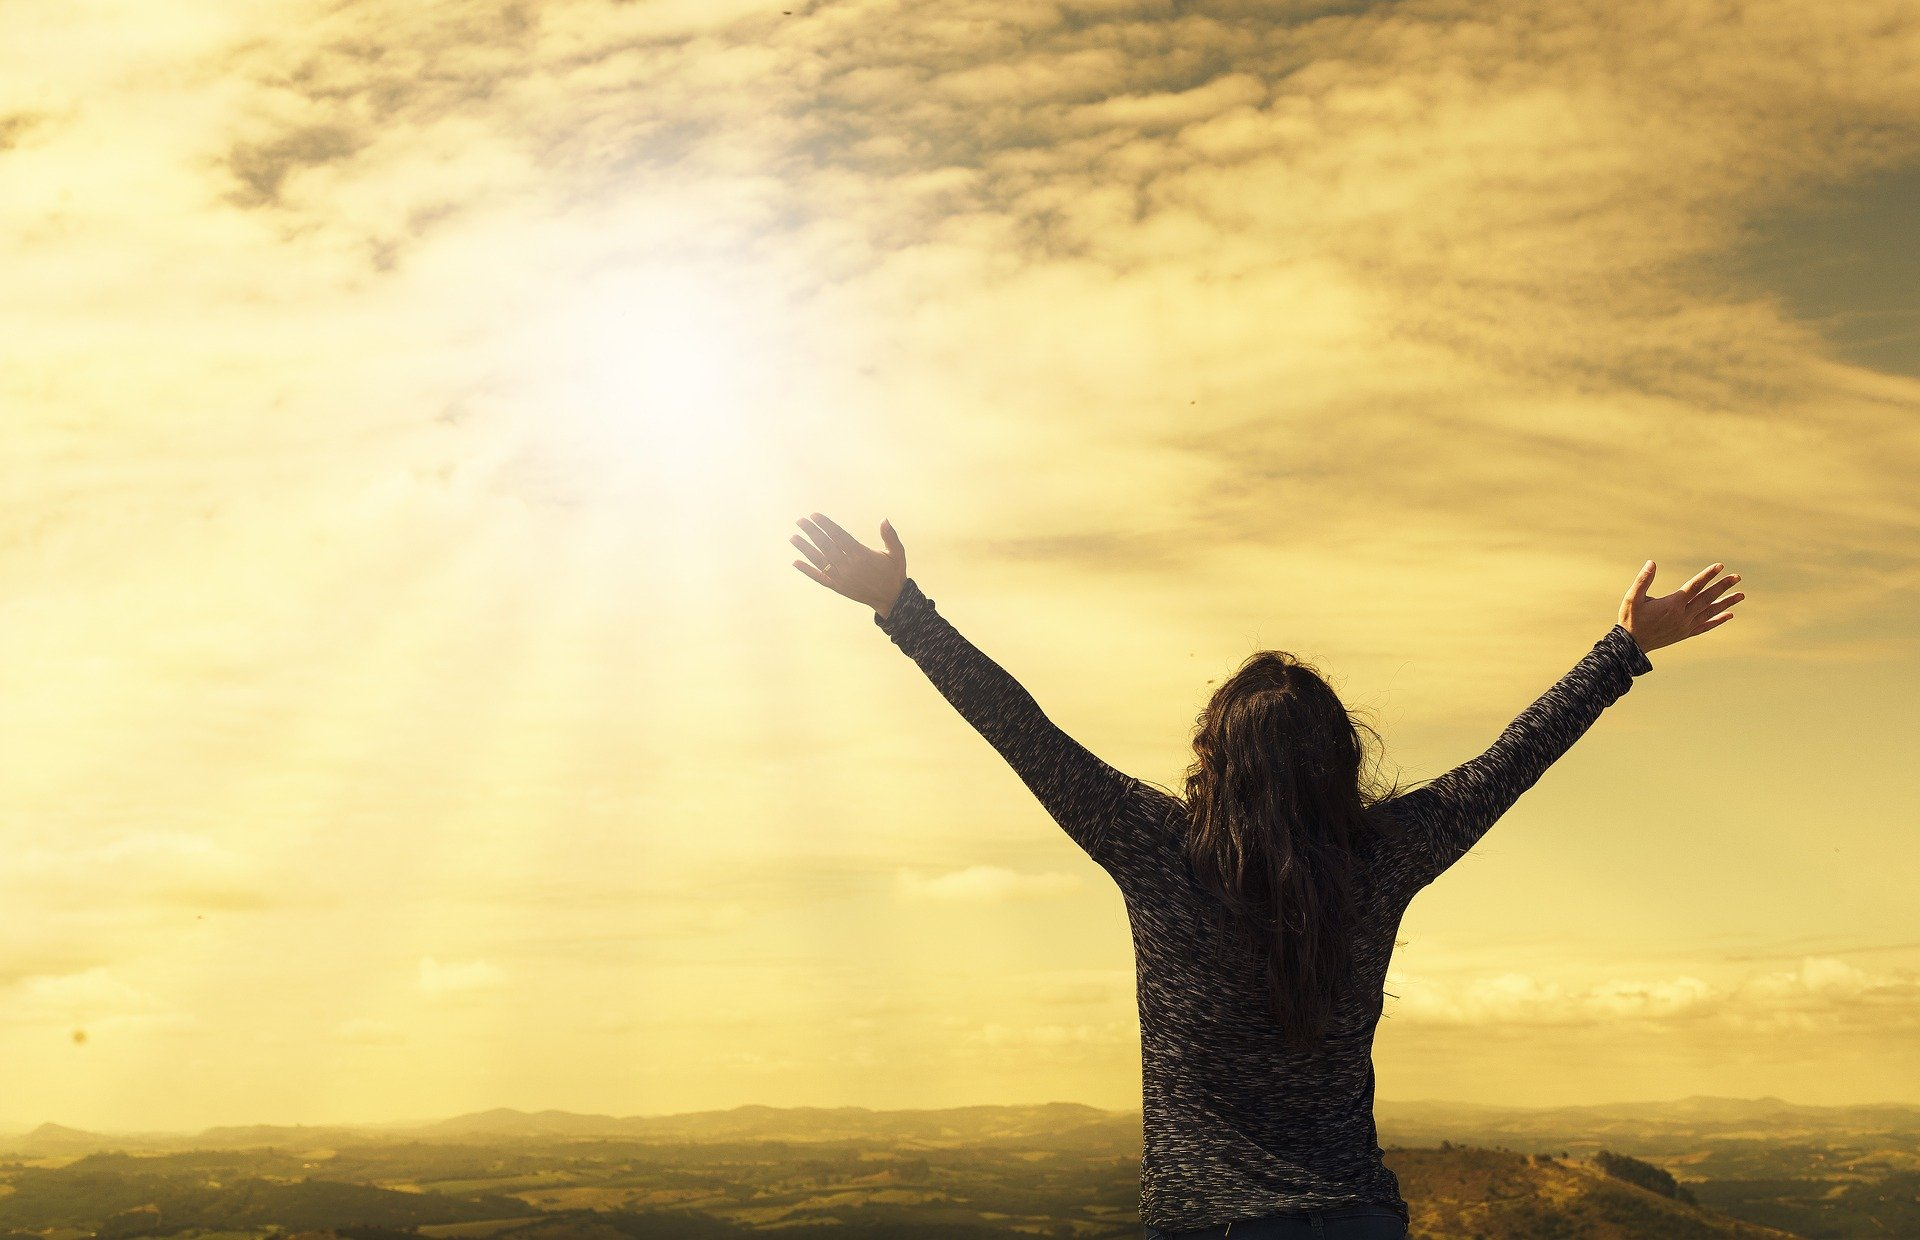 arms raised in V formation, lifted up to the sun -- hope